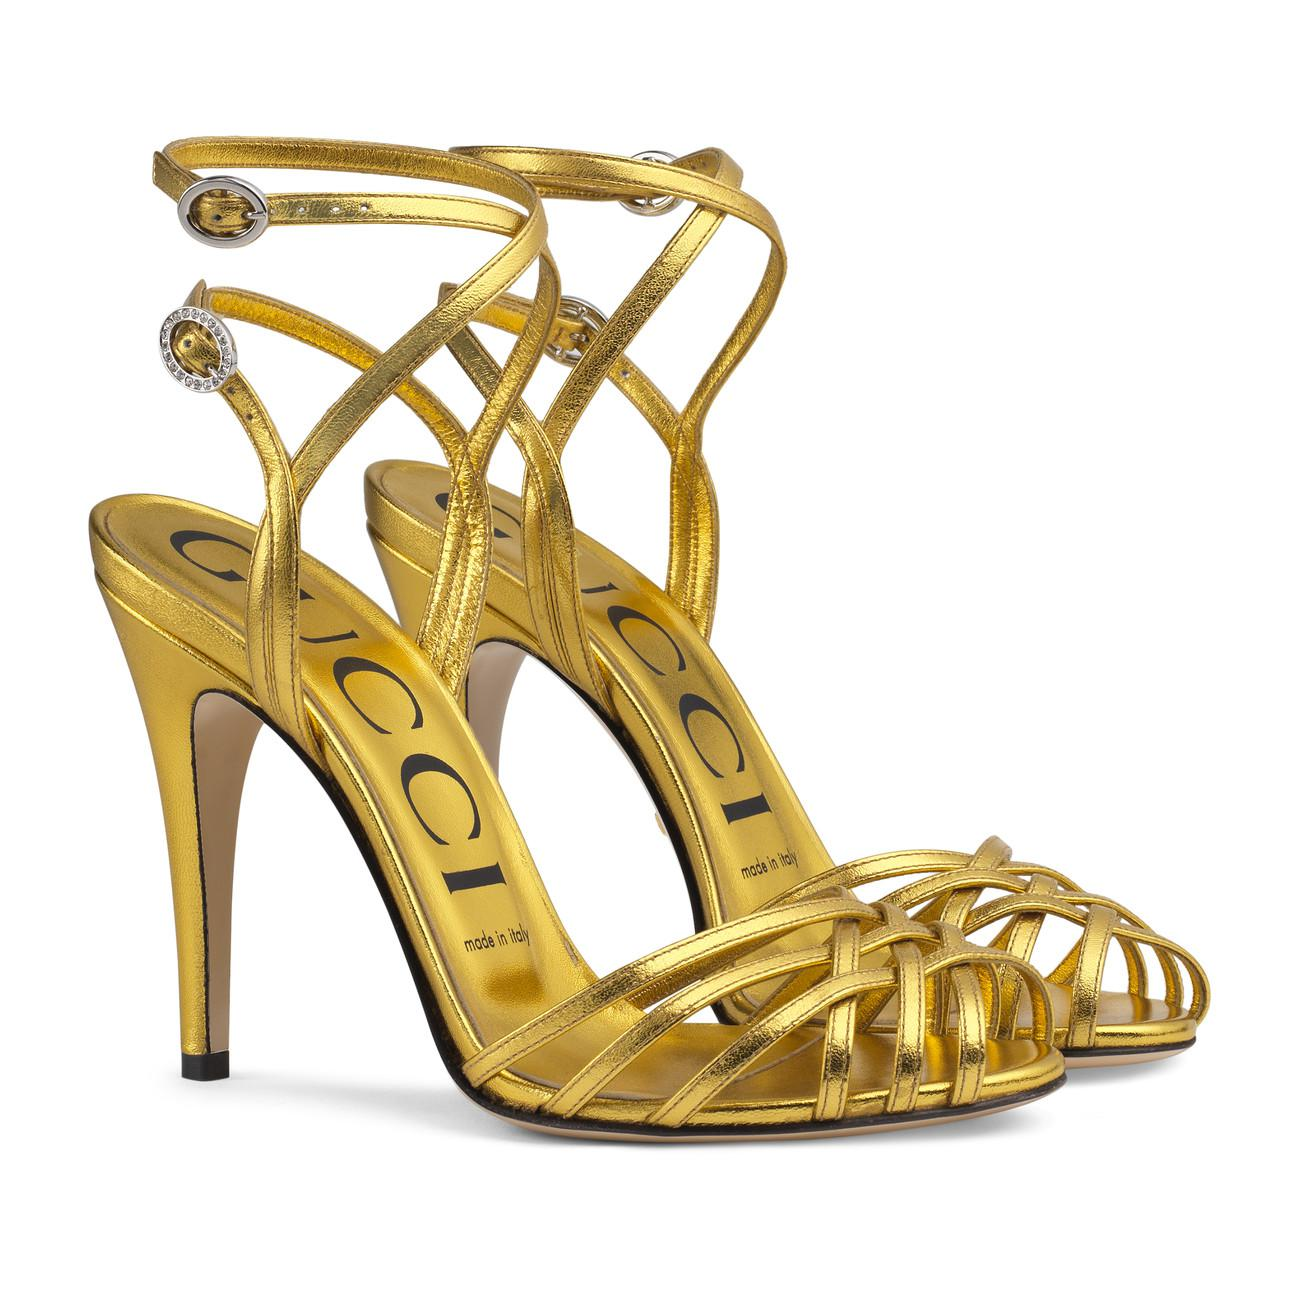 419da17af0c Lyst - Gucci Metallic Leather Sandal in Metallic